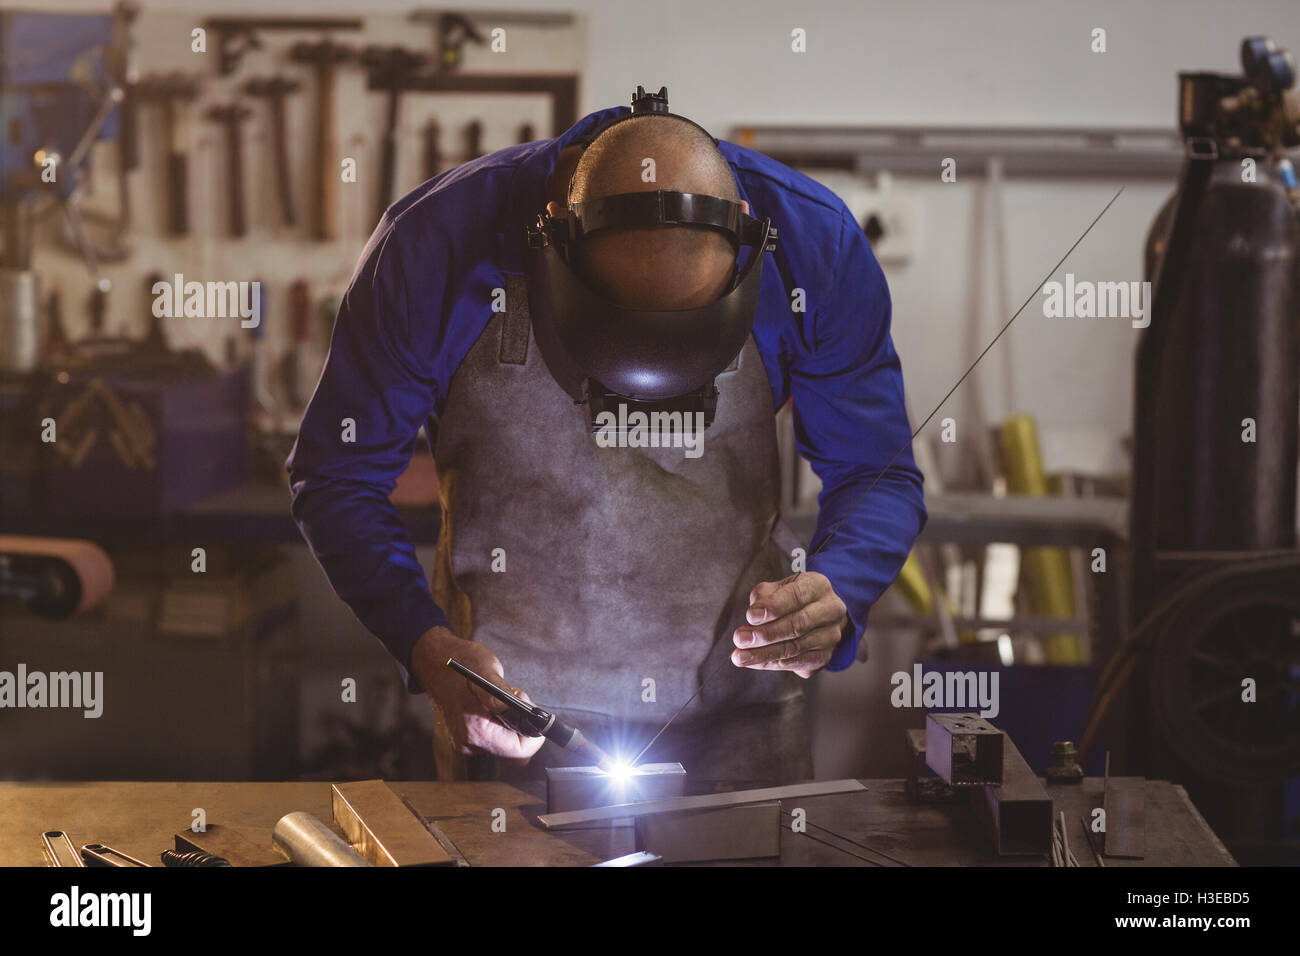 Male welder working on a piece of metal - Stock Image